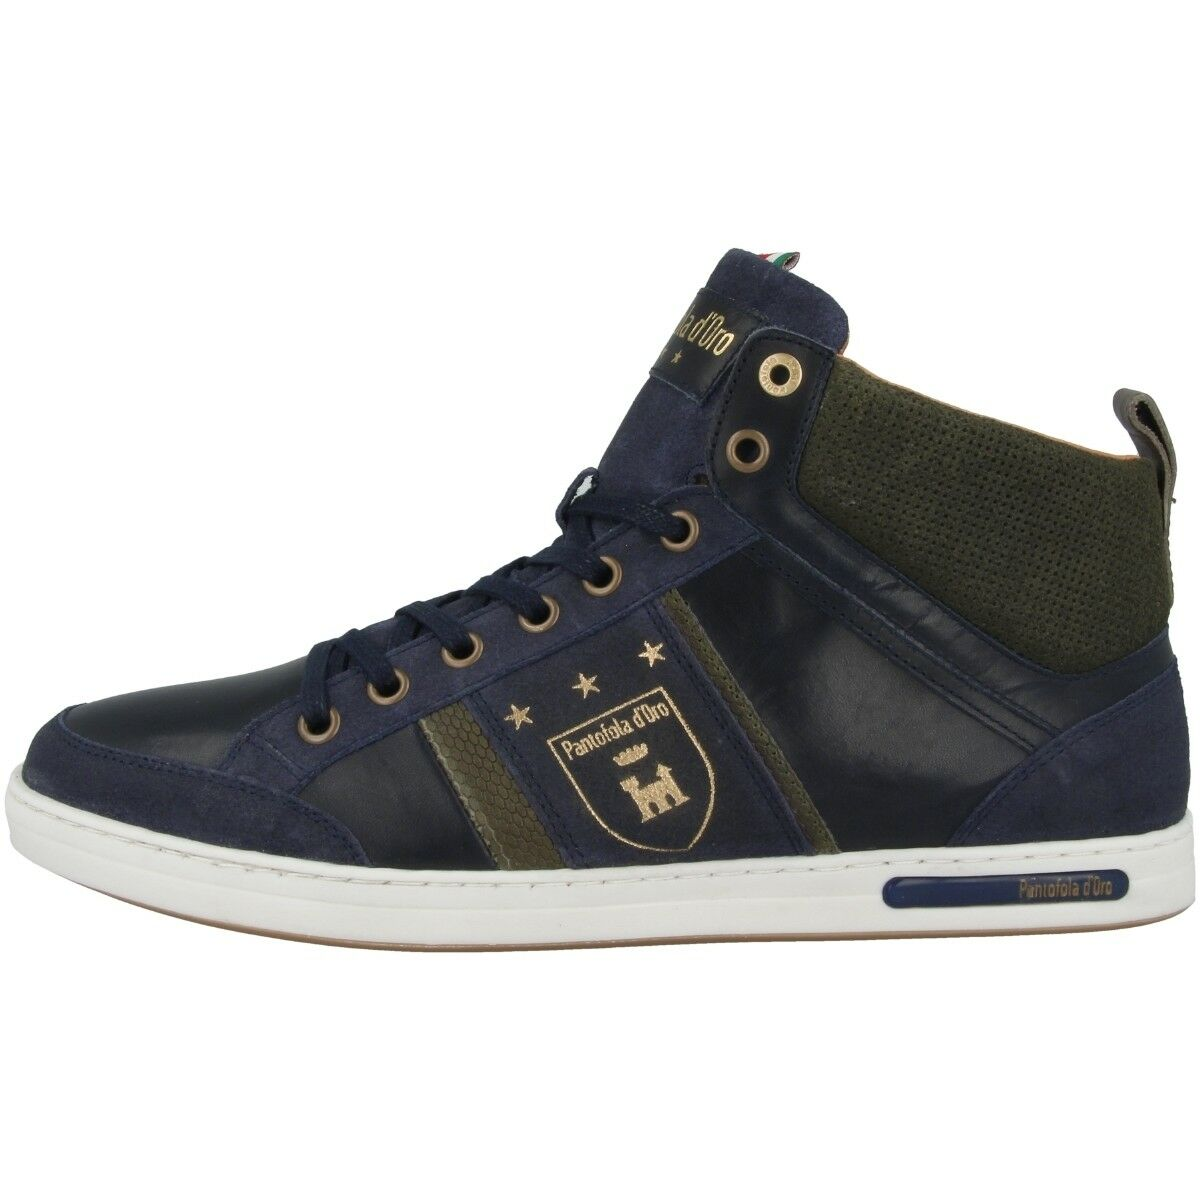 8dde94fde Join our newsletter list. Go Email is required Adidas SoleCourt Boost  Tennis shoes Mens ...